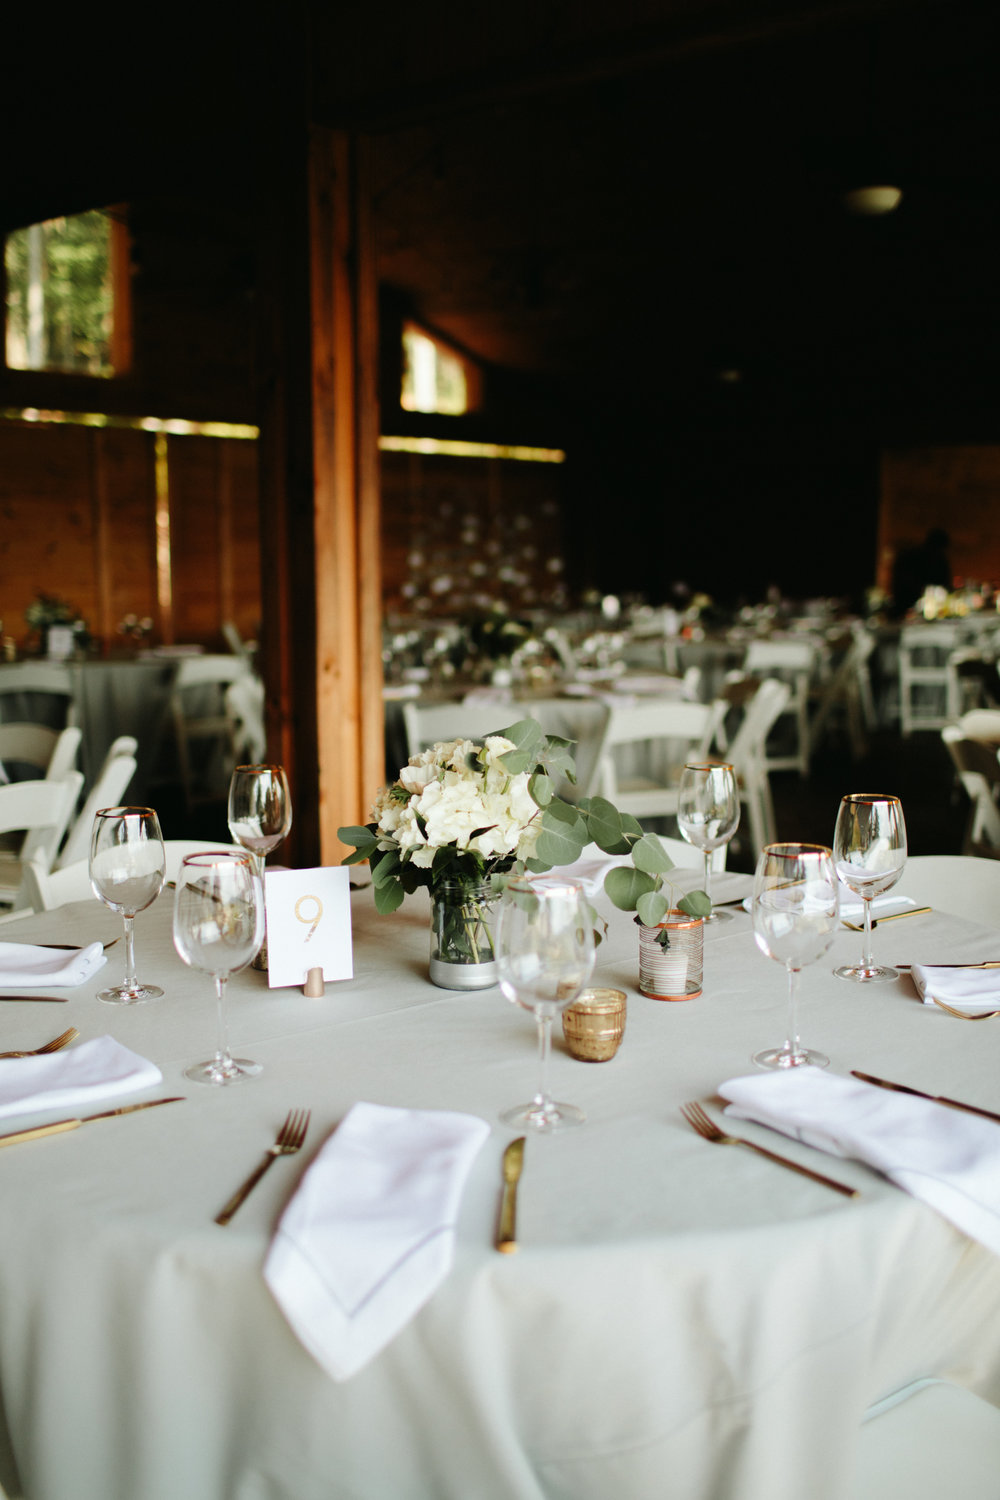 eco-friendly- minimalist-wedding-decor-16.jpg